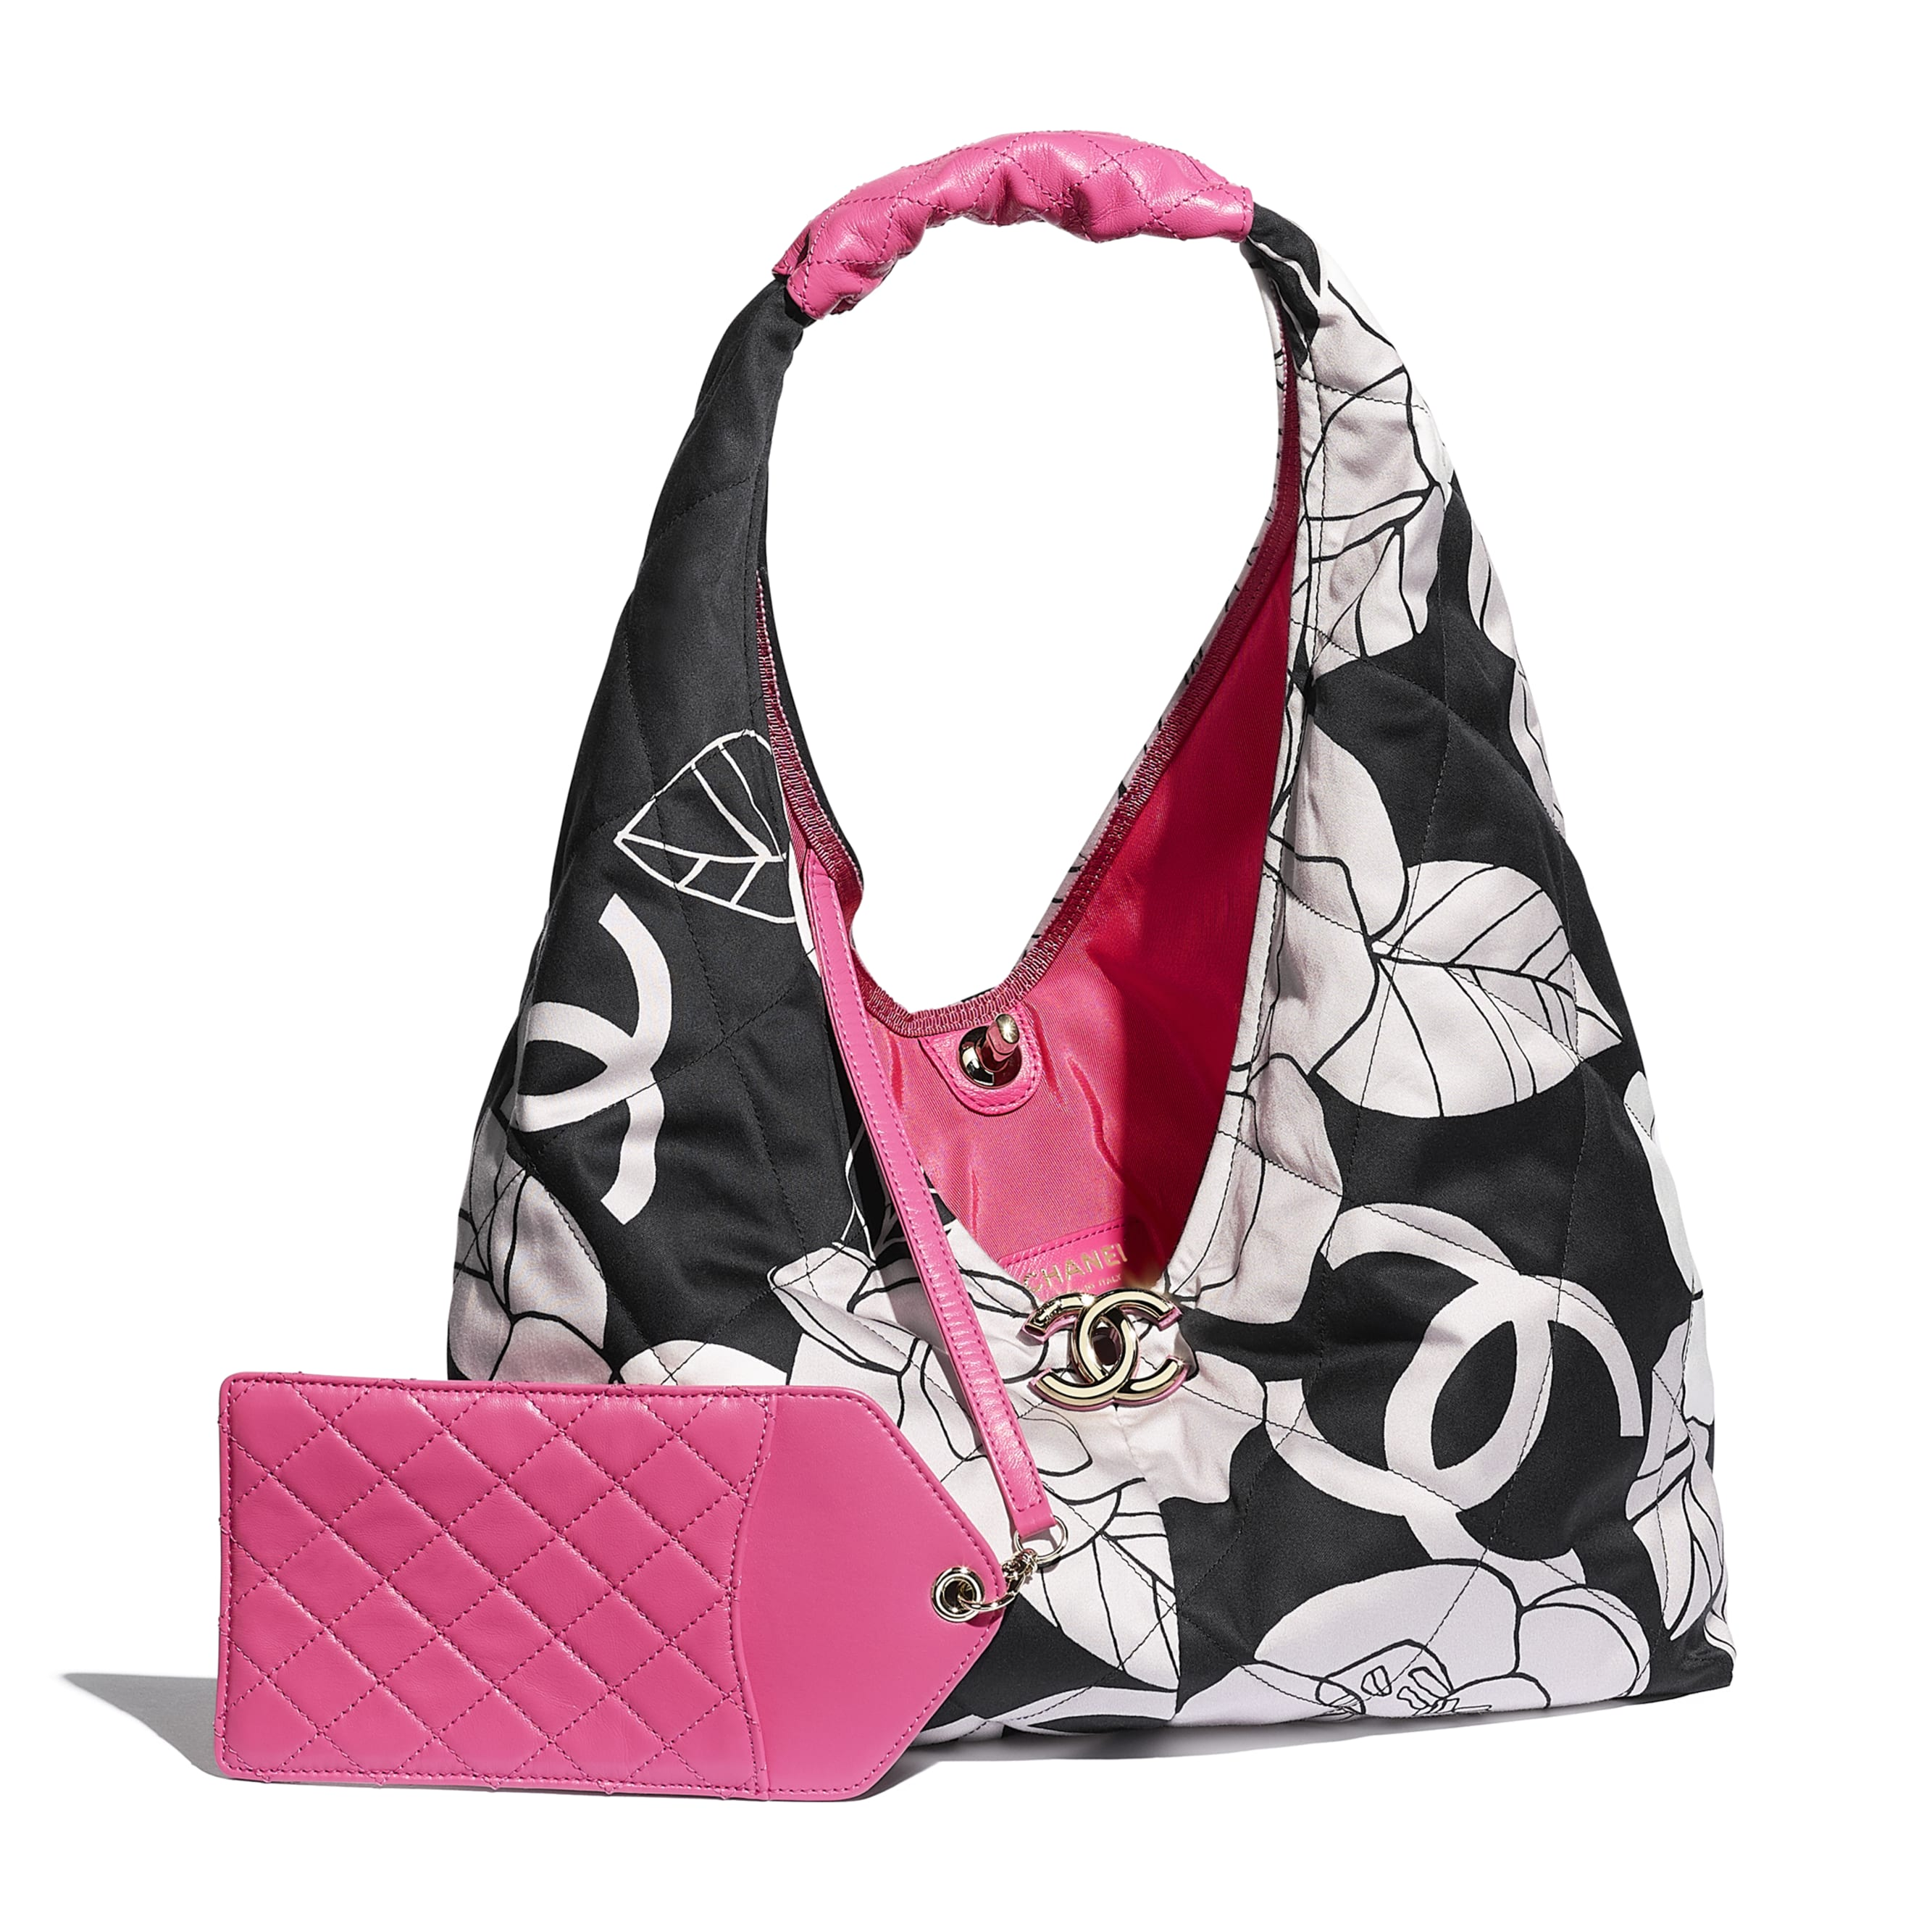 Small Hobo Bag - White, Black & Pink - Cotton Canvas, Calfskin & Gold-Tone Metal - CHANEL - Other view - see standard sized version